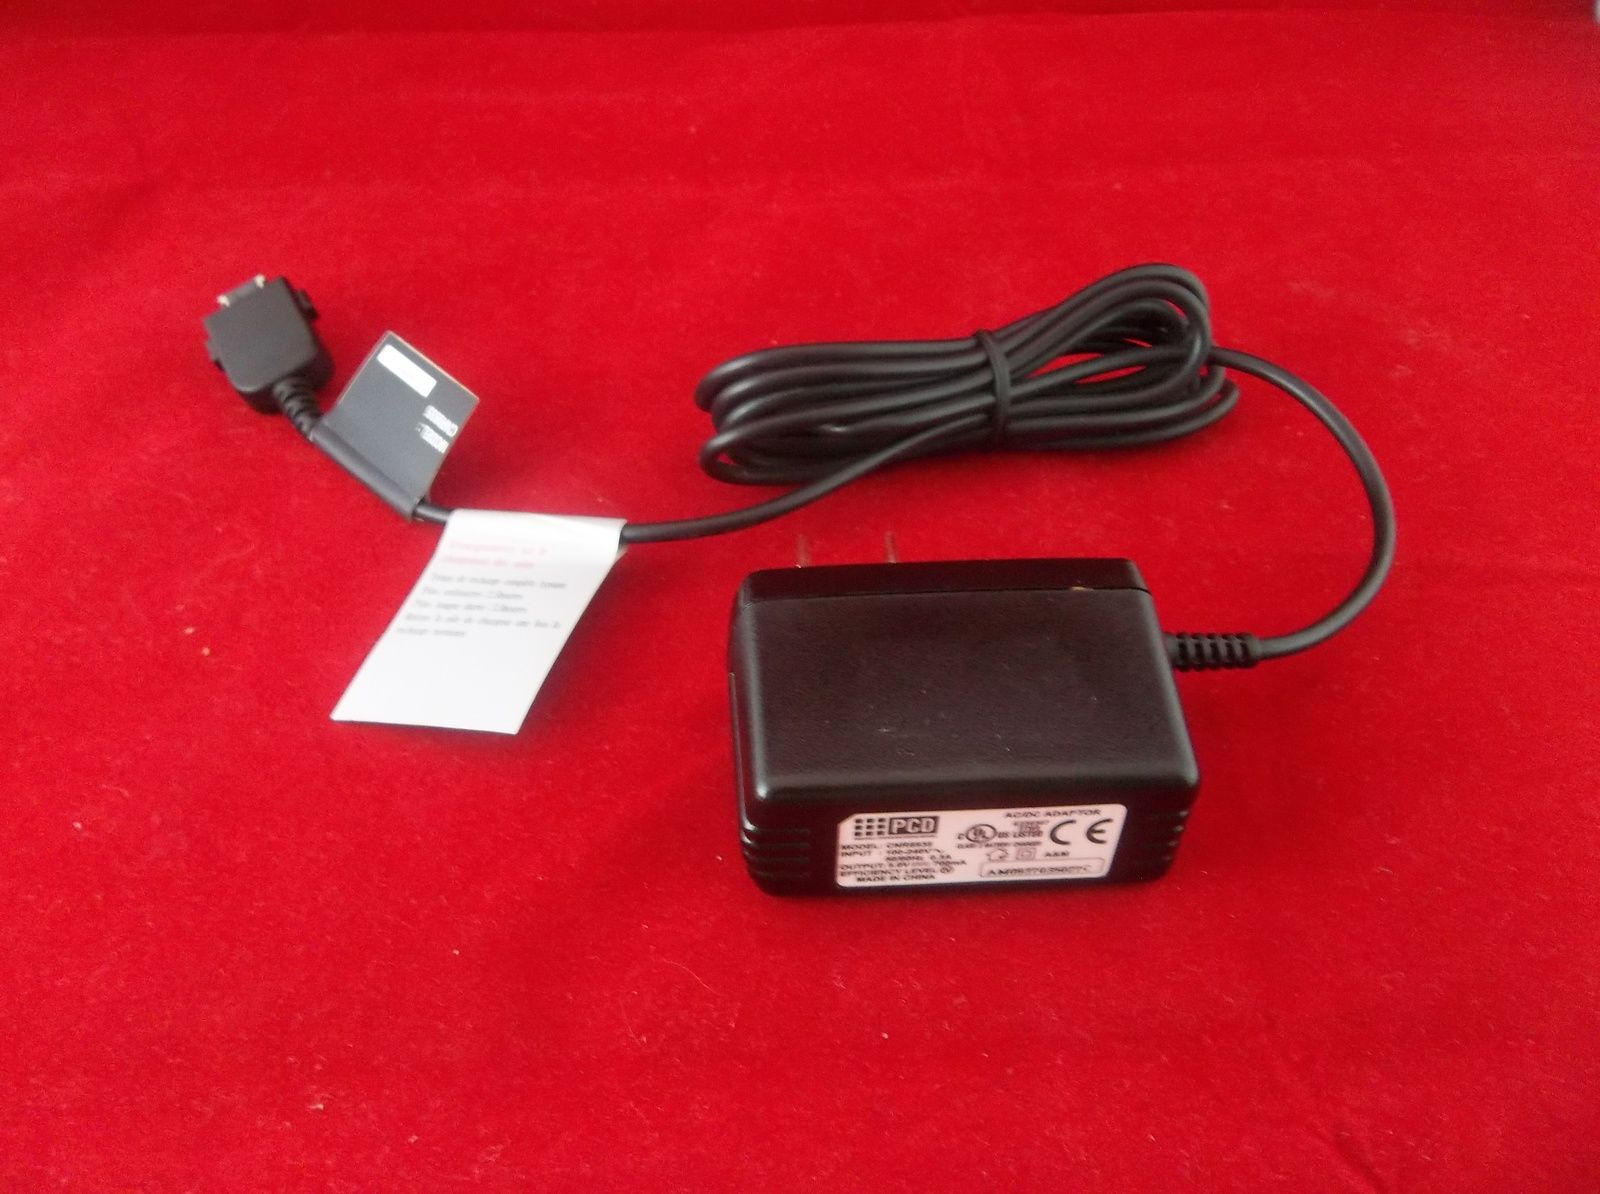 Pcd Cnr8935 Ac Dc Power Adaptor Cell Phone Charger Cord All My Wiring Plug Cellphone Oem Bonanza